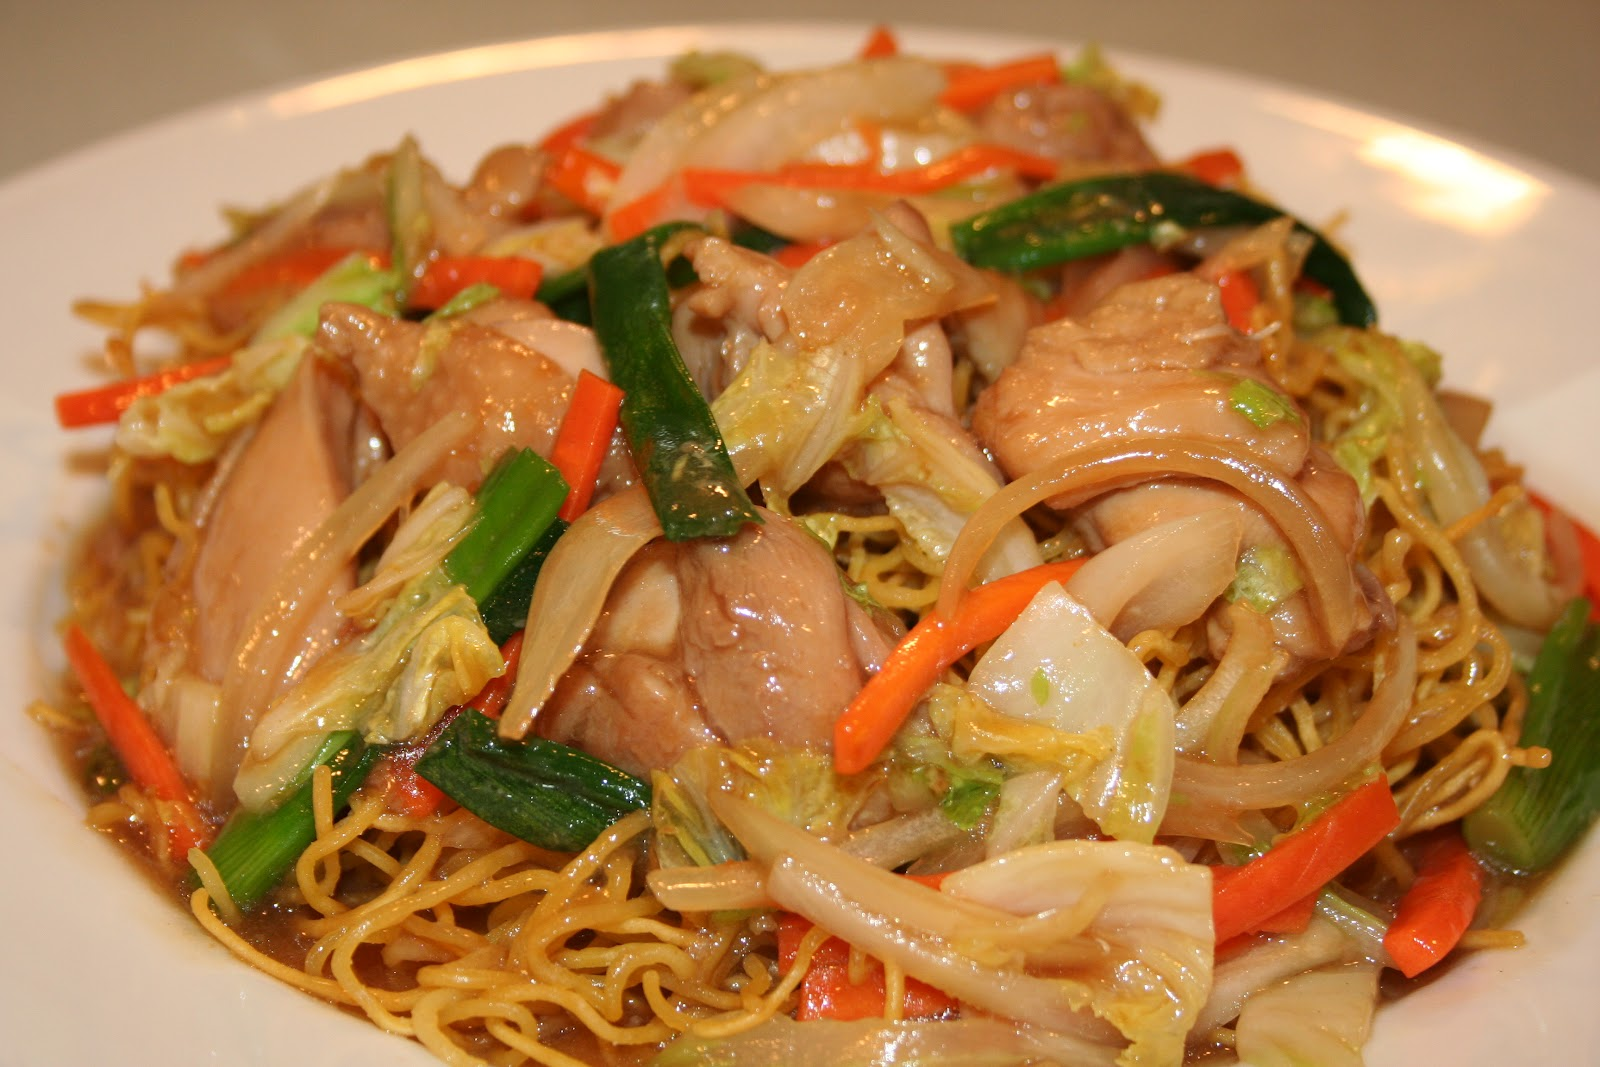 chow mein This authentic cantonese version of chow mein features fresh egg noodles, which are fried into a cake that softens slightly when topped with a meat and vegetable sauce.